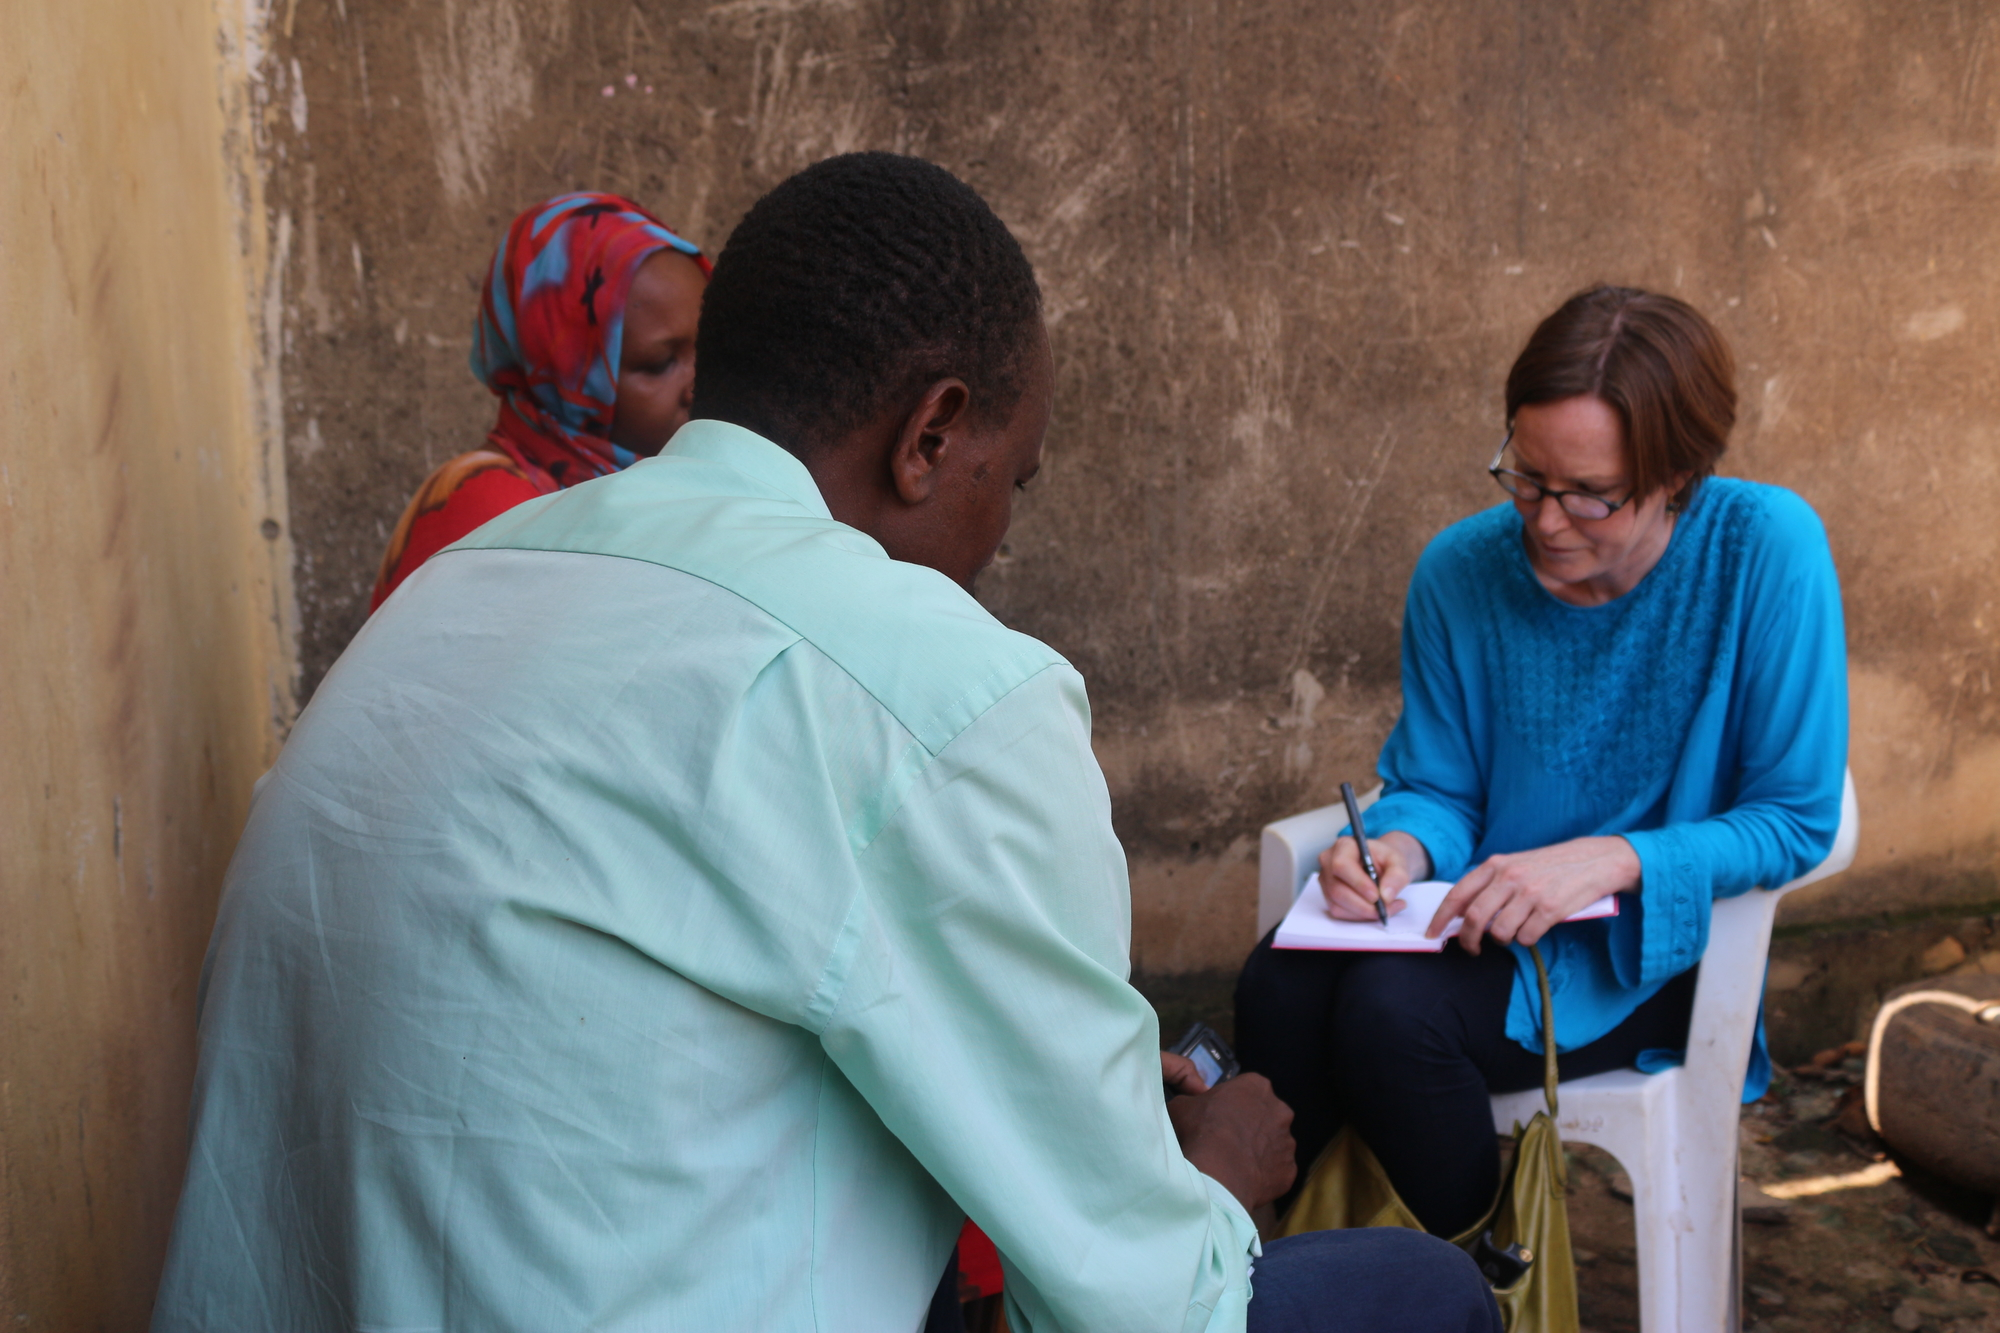 Researcher Joanne Mariner collects testimony in Bangui, Central African Republic, during the conflict, December 2013